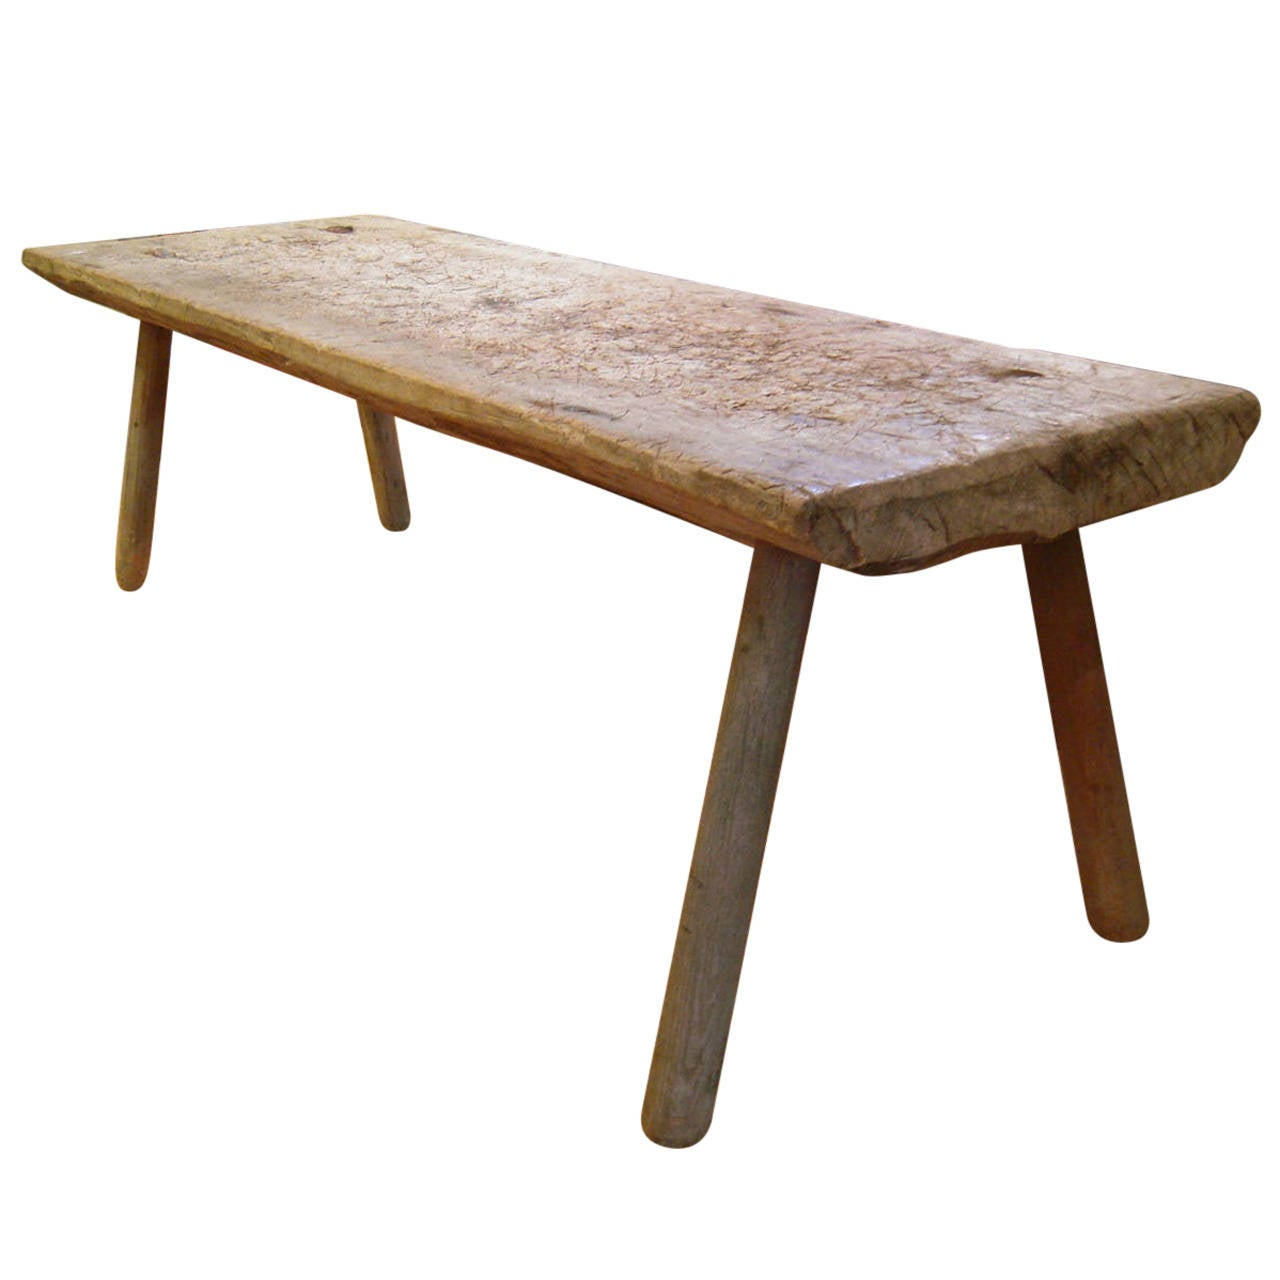 American Primitive Table Or Bench At 1stdibs